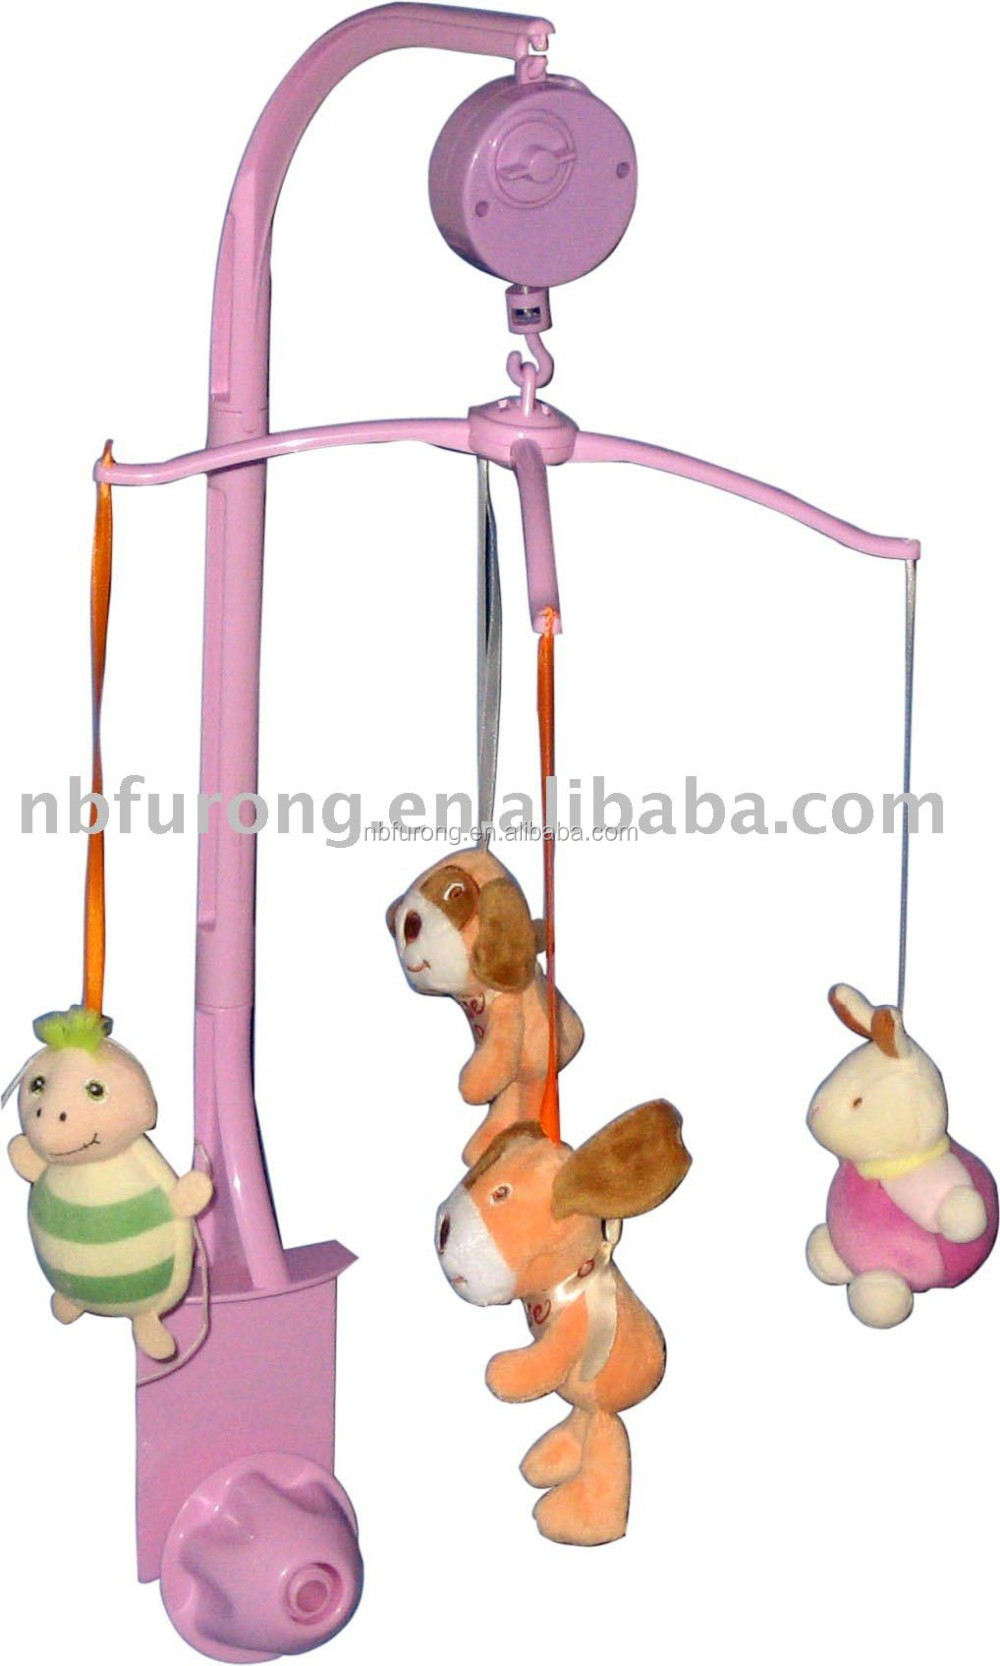 Wind-Up hand crank Music Box custom baby bed hanger toy